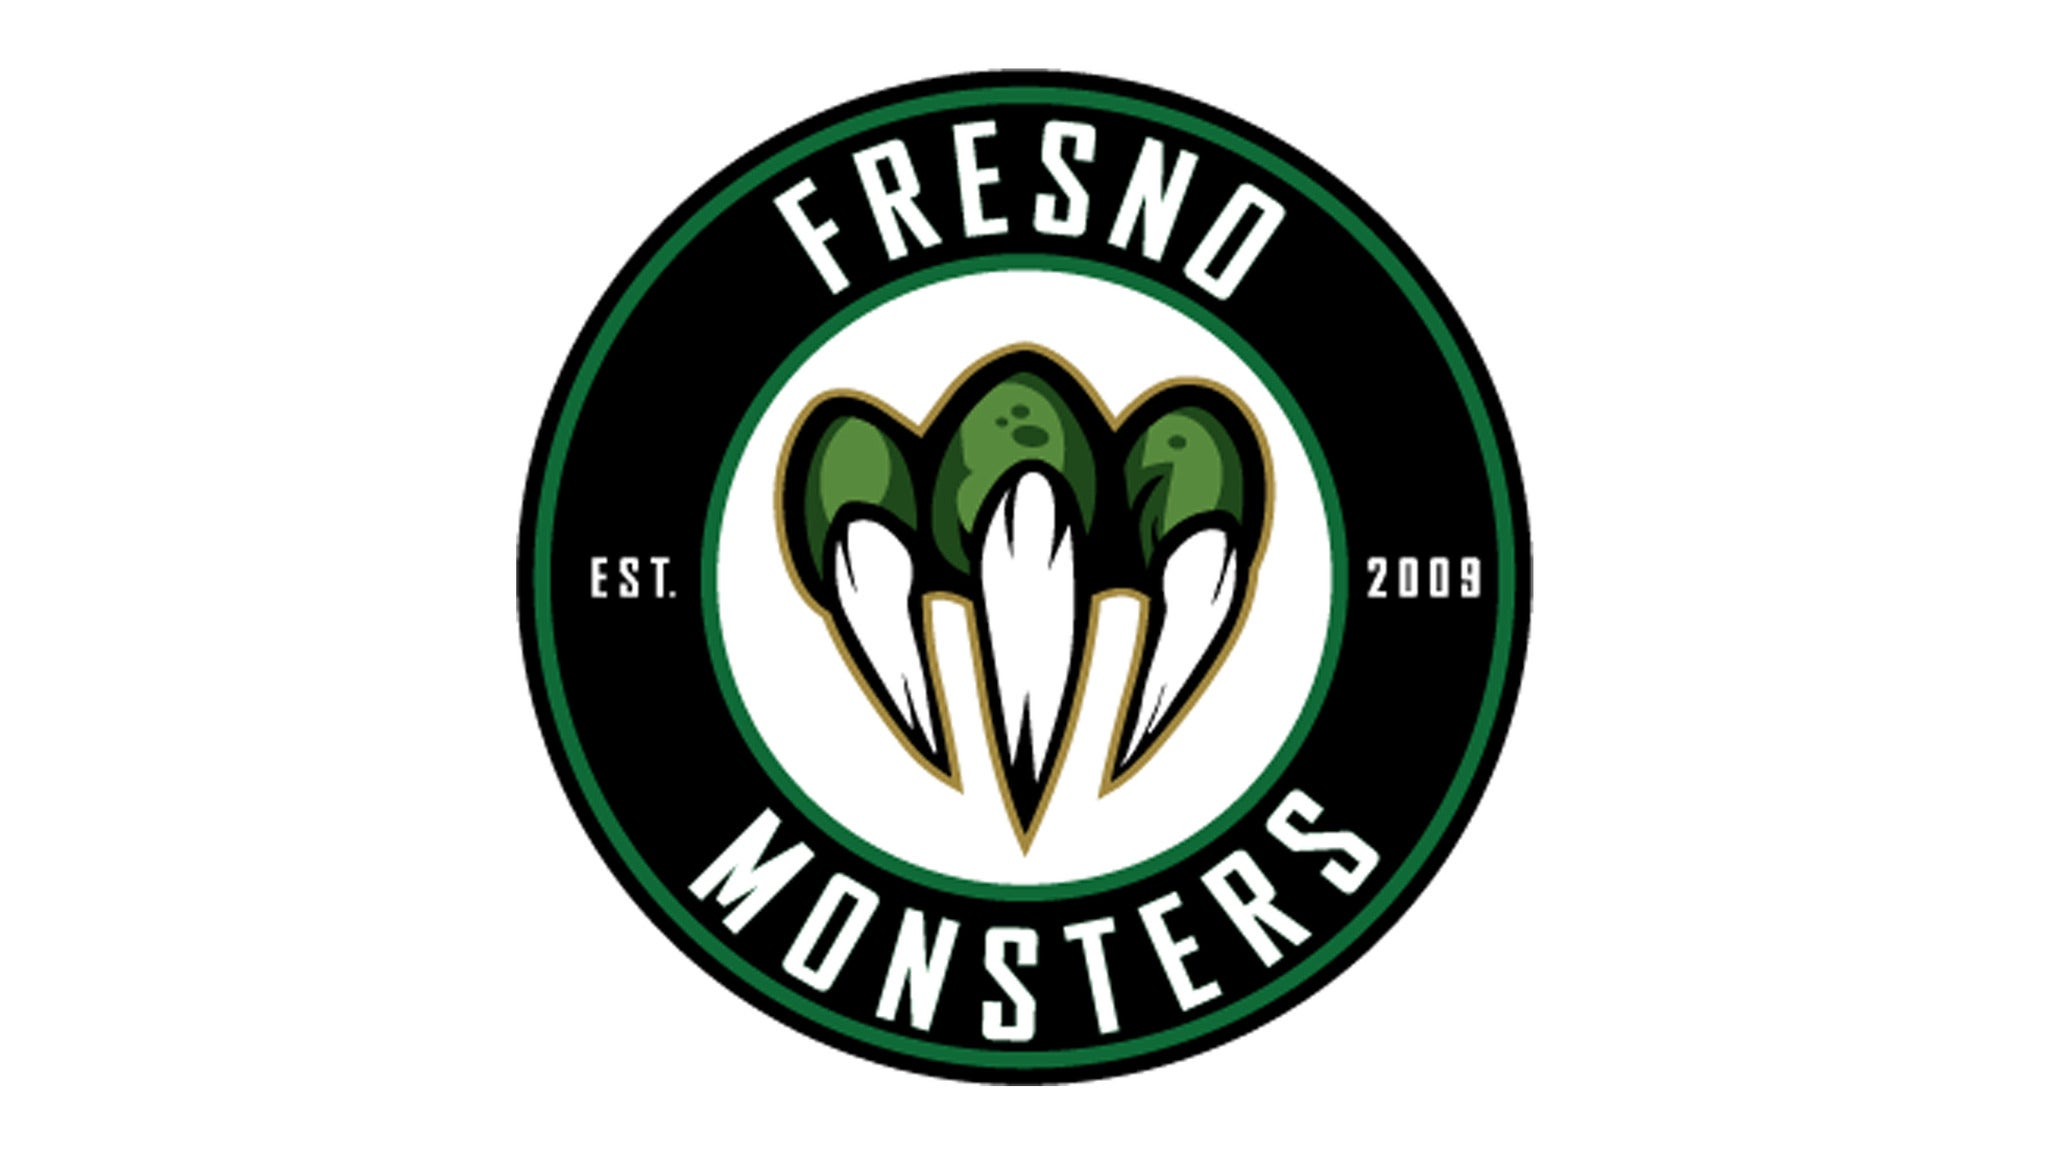 Fresno Monsters